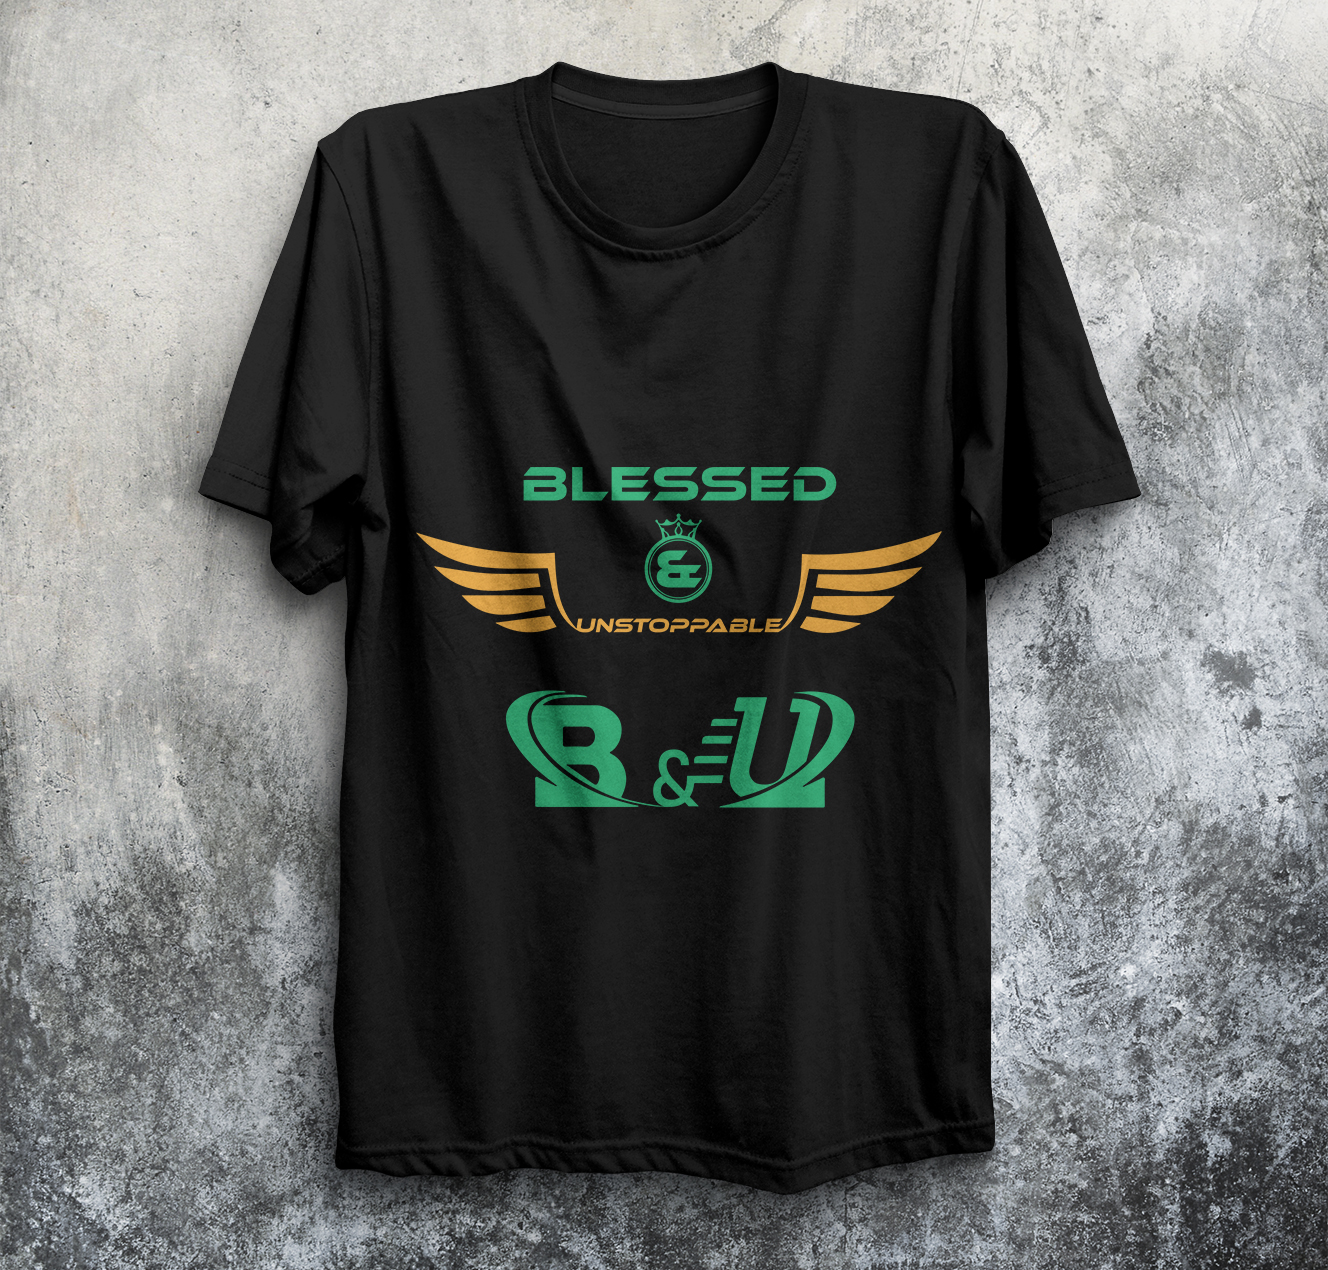 I will design Unique T-SHIRT for you